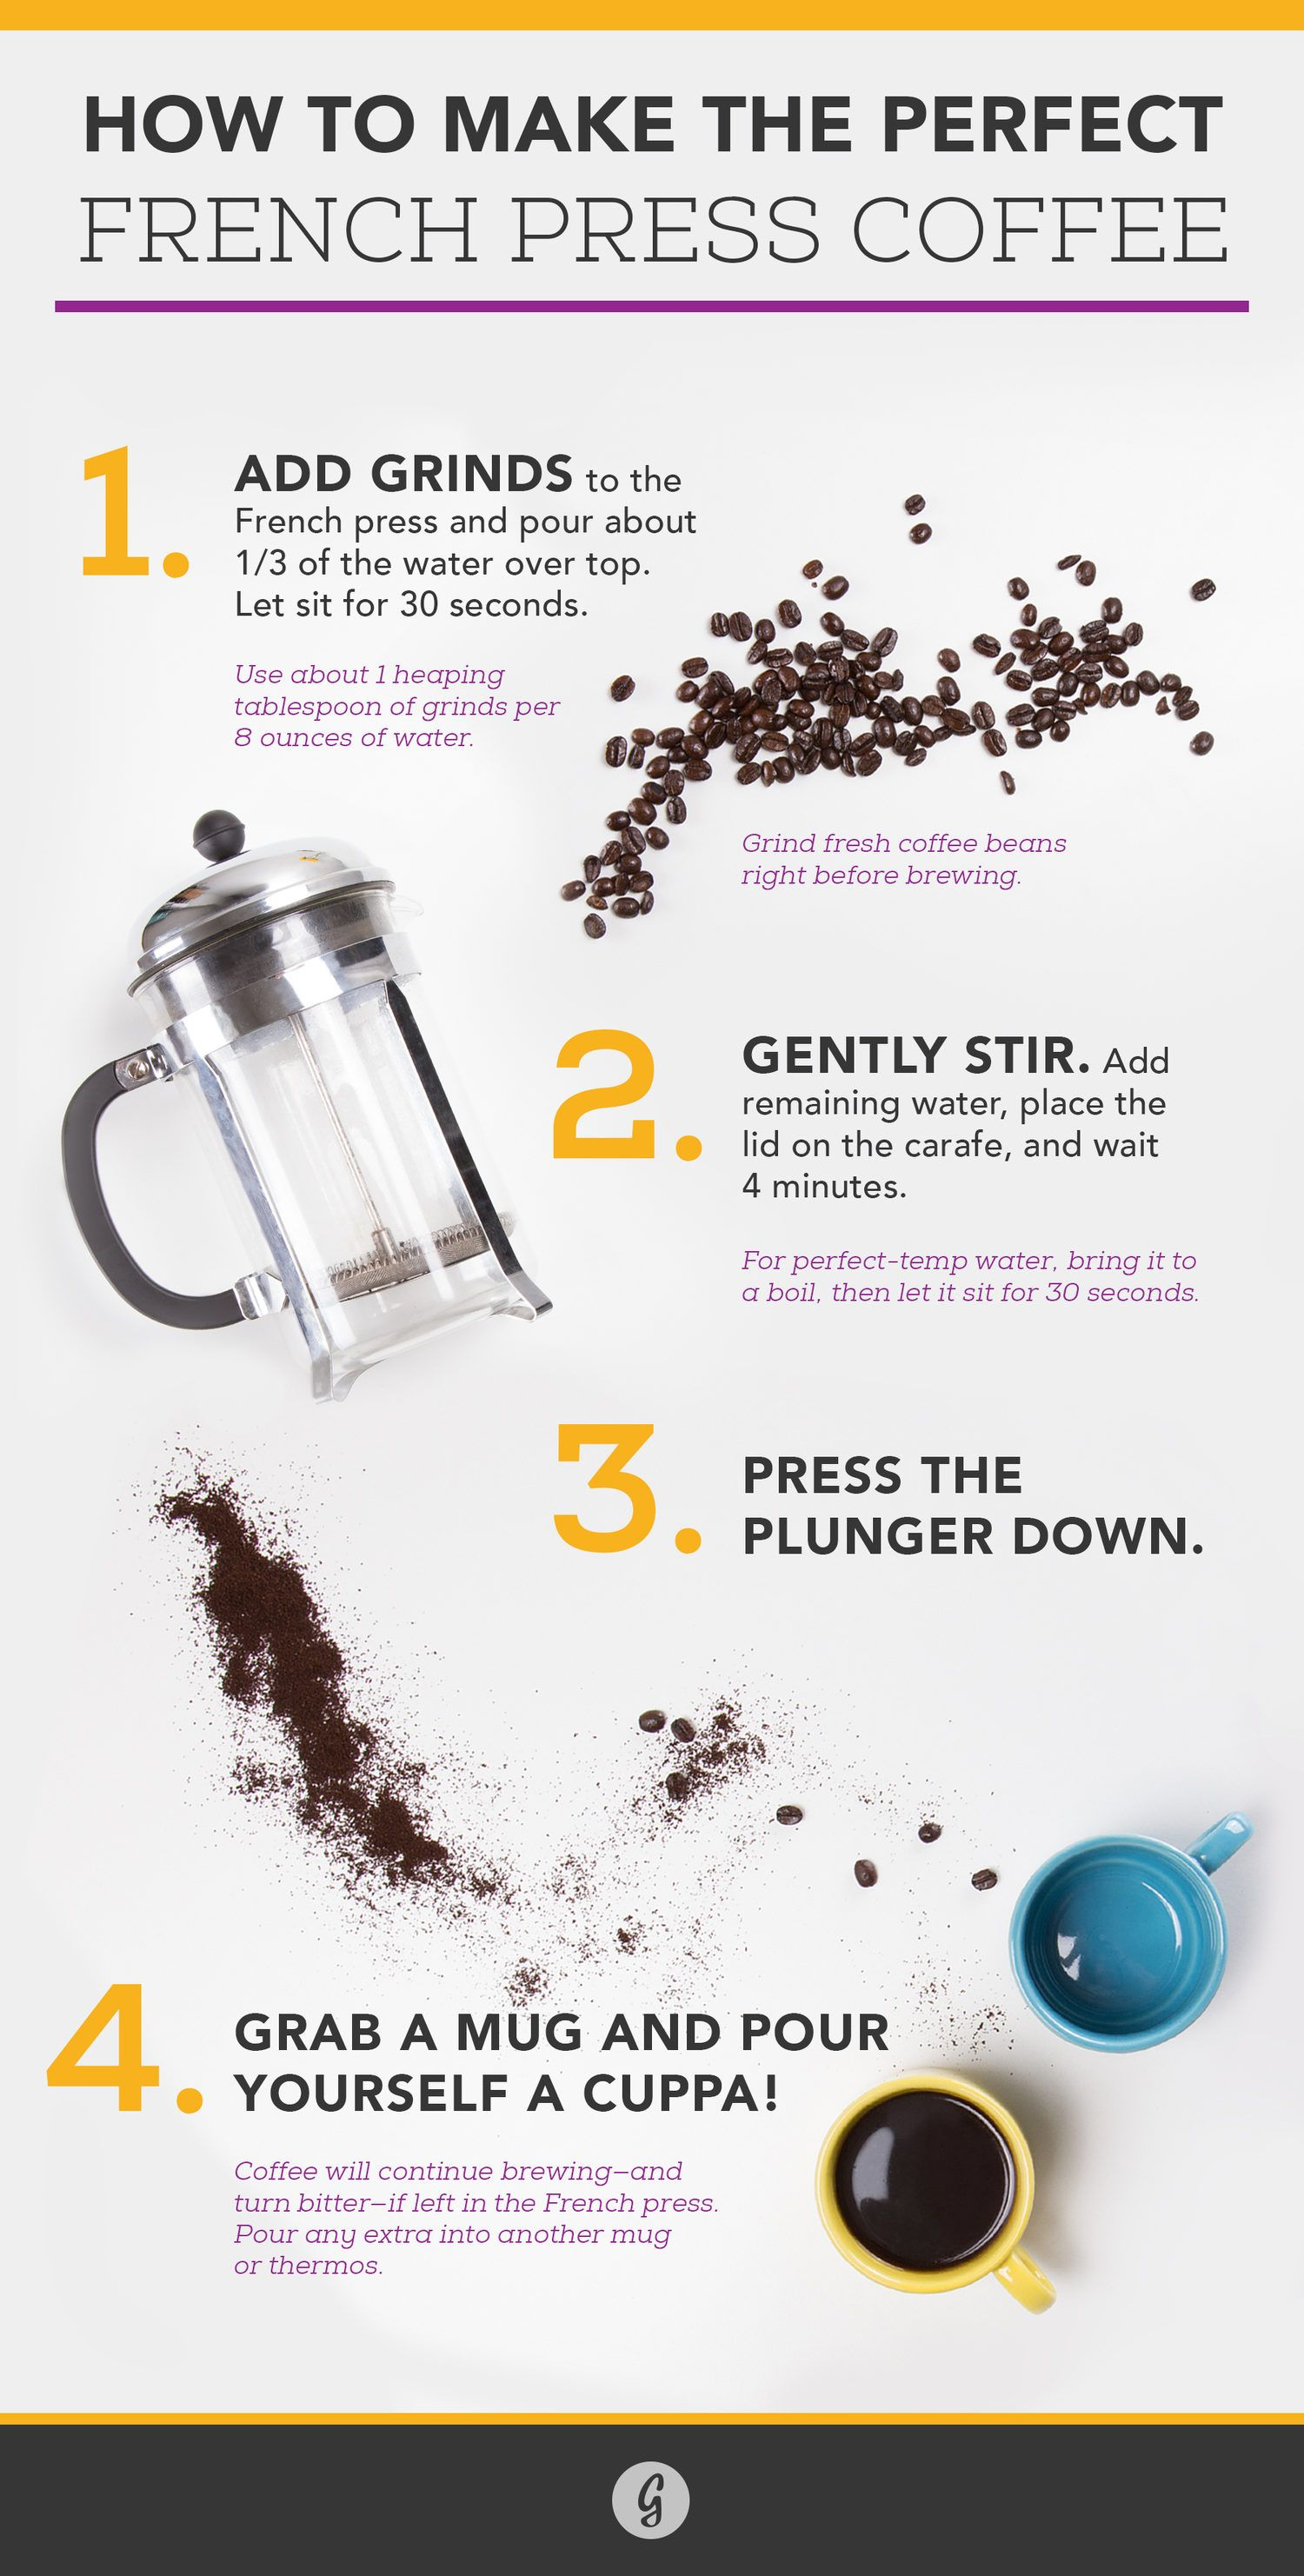 how to make the perfect french press coffee food coffee tasting best french press coffee. Black Bedroom Furniture Sets. Home Design Ideas